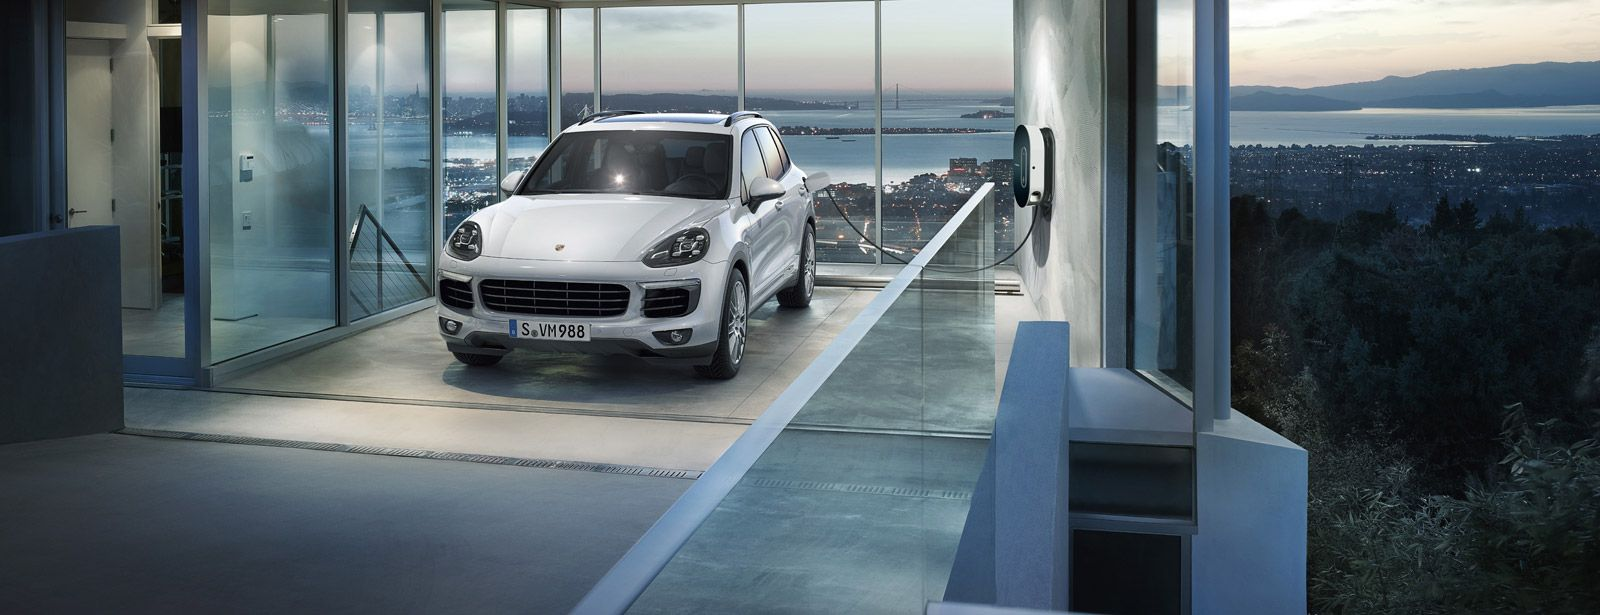 In The Spirit Of Earth Day A Brief Overview Of The Kuni Line Up Of Electric And Hybrid Vehicles Hybrid Car Luxury Hybrid Cars Porsche Cayenne